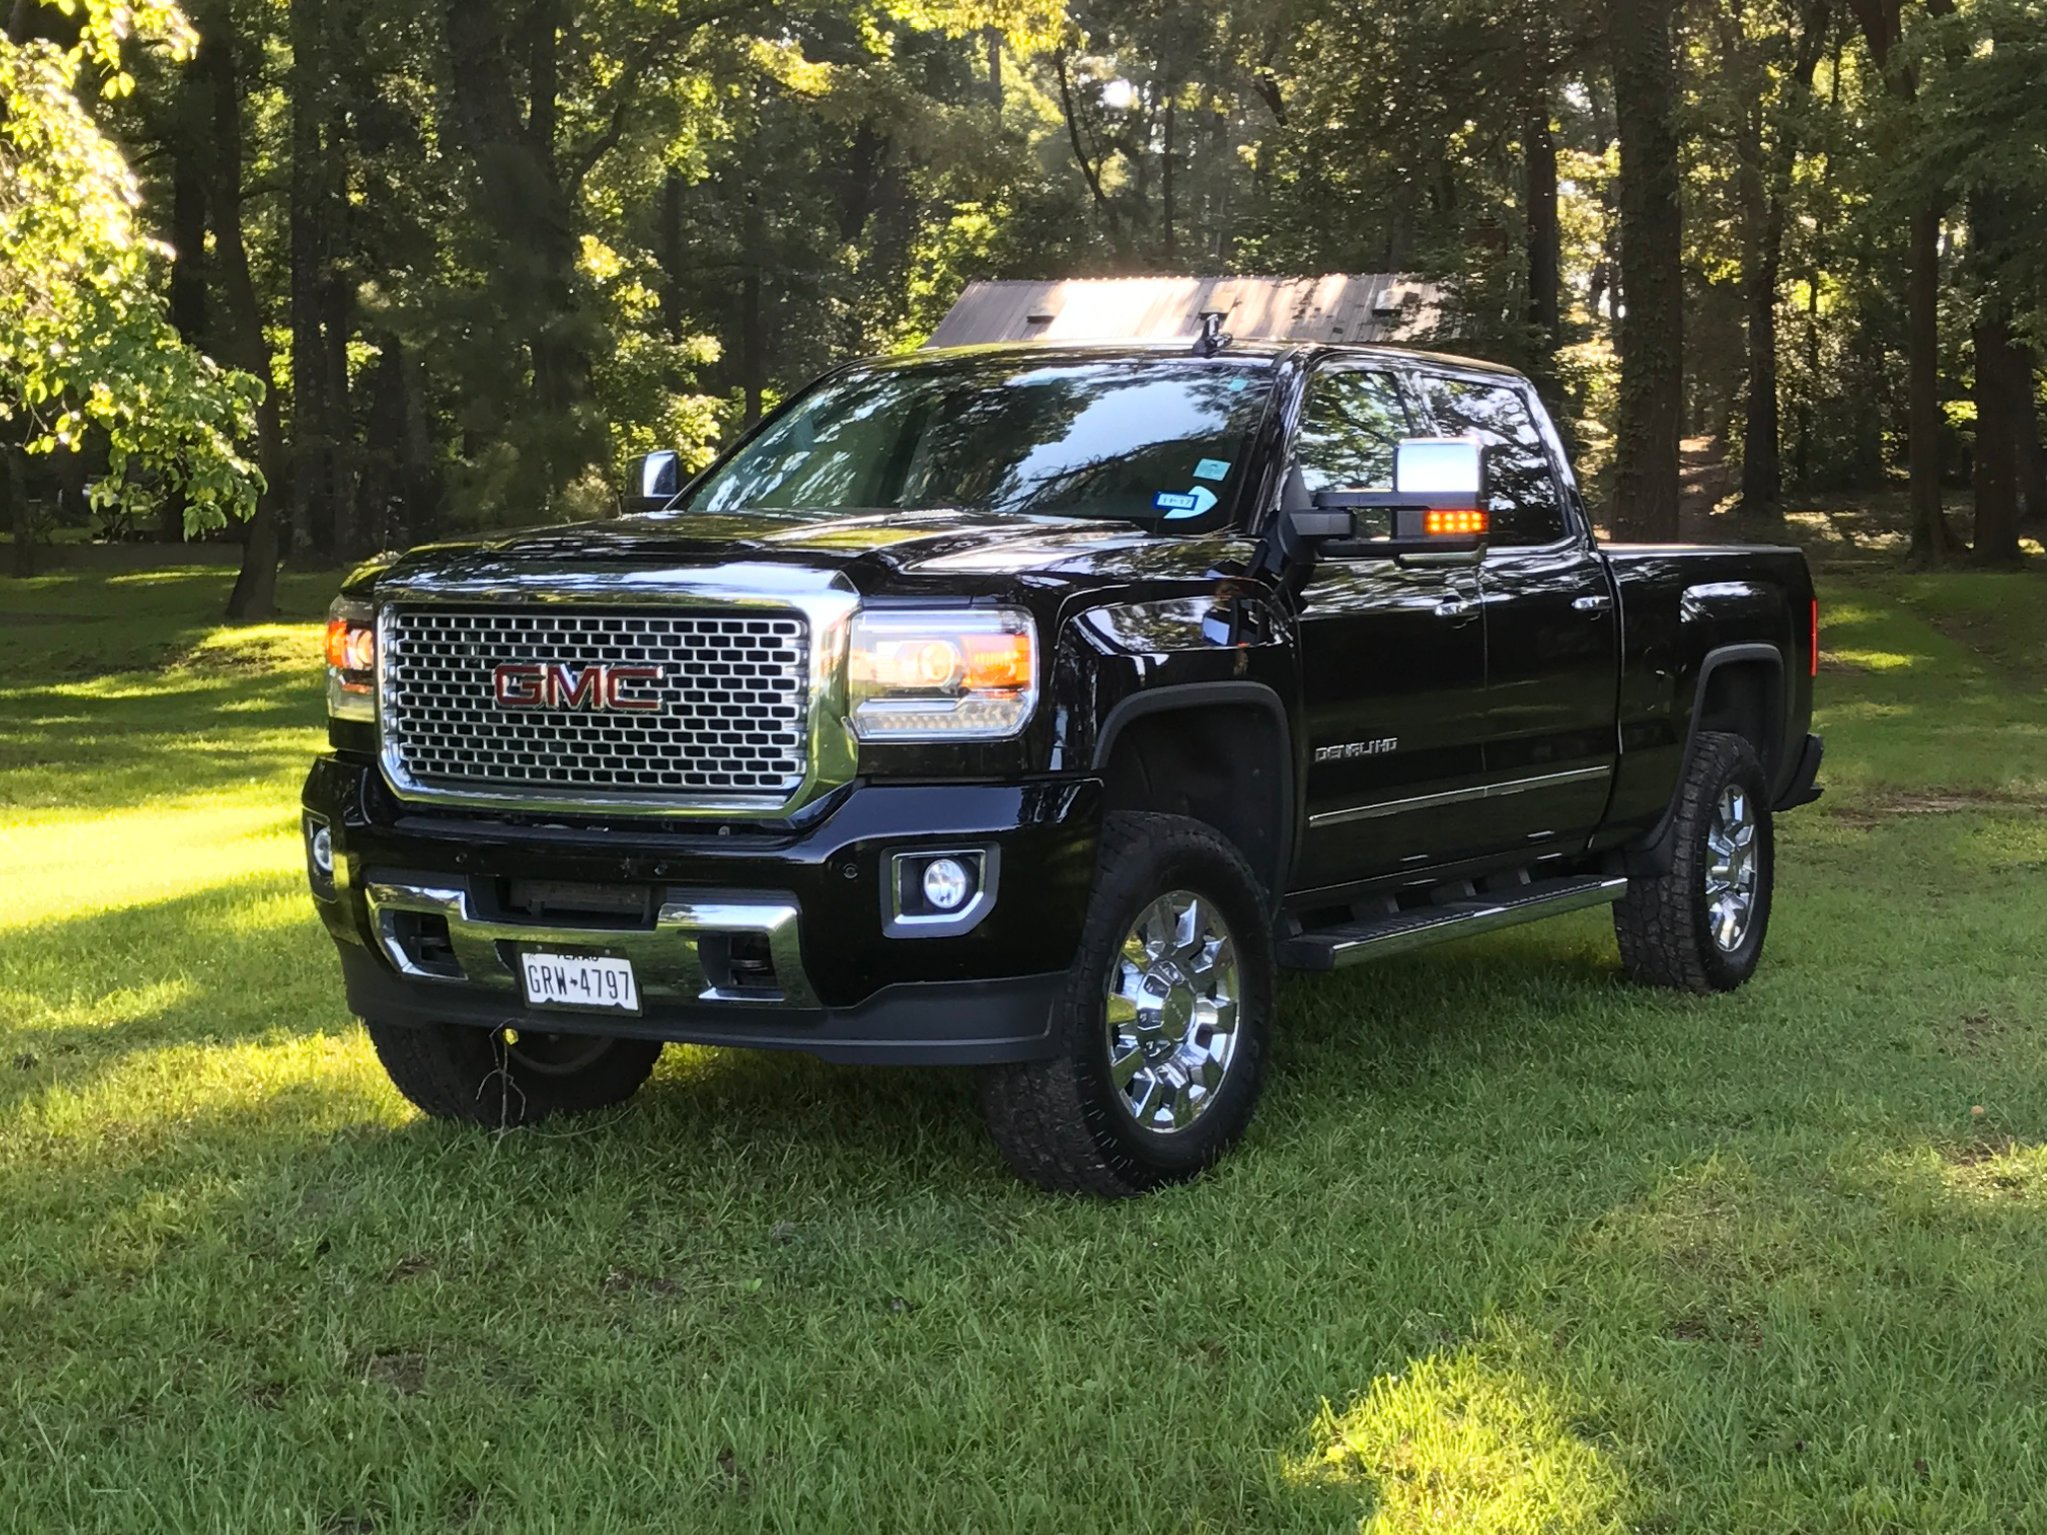 anybody running 35's on a 2015 duramax? - Offshoreonly.com